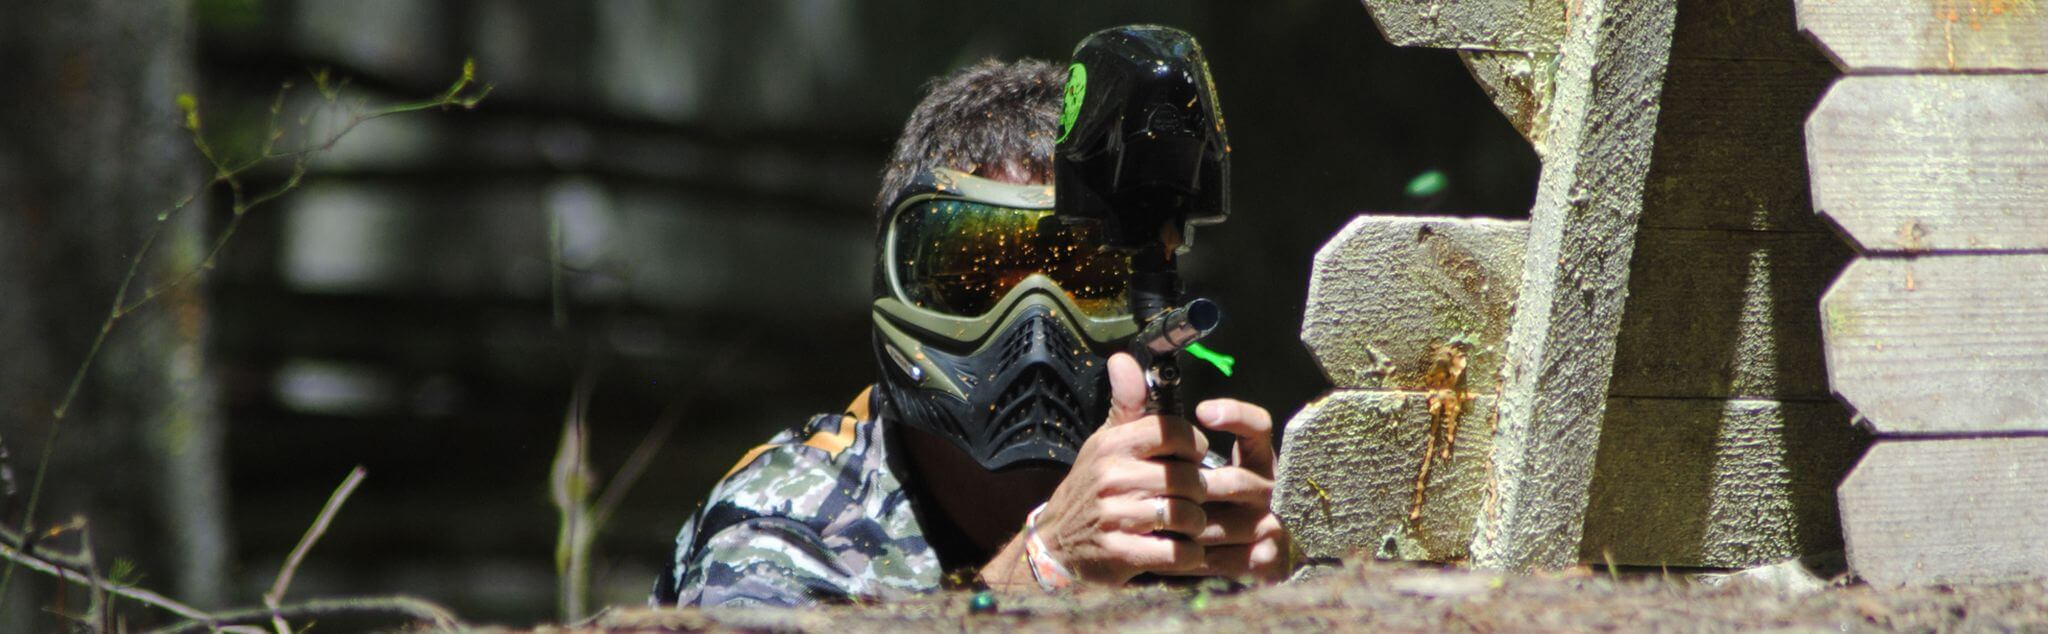 Paintball en Viver